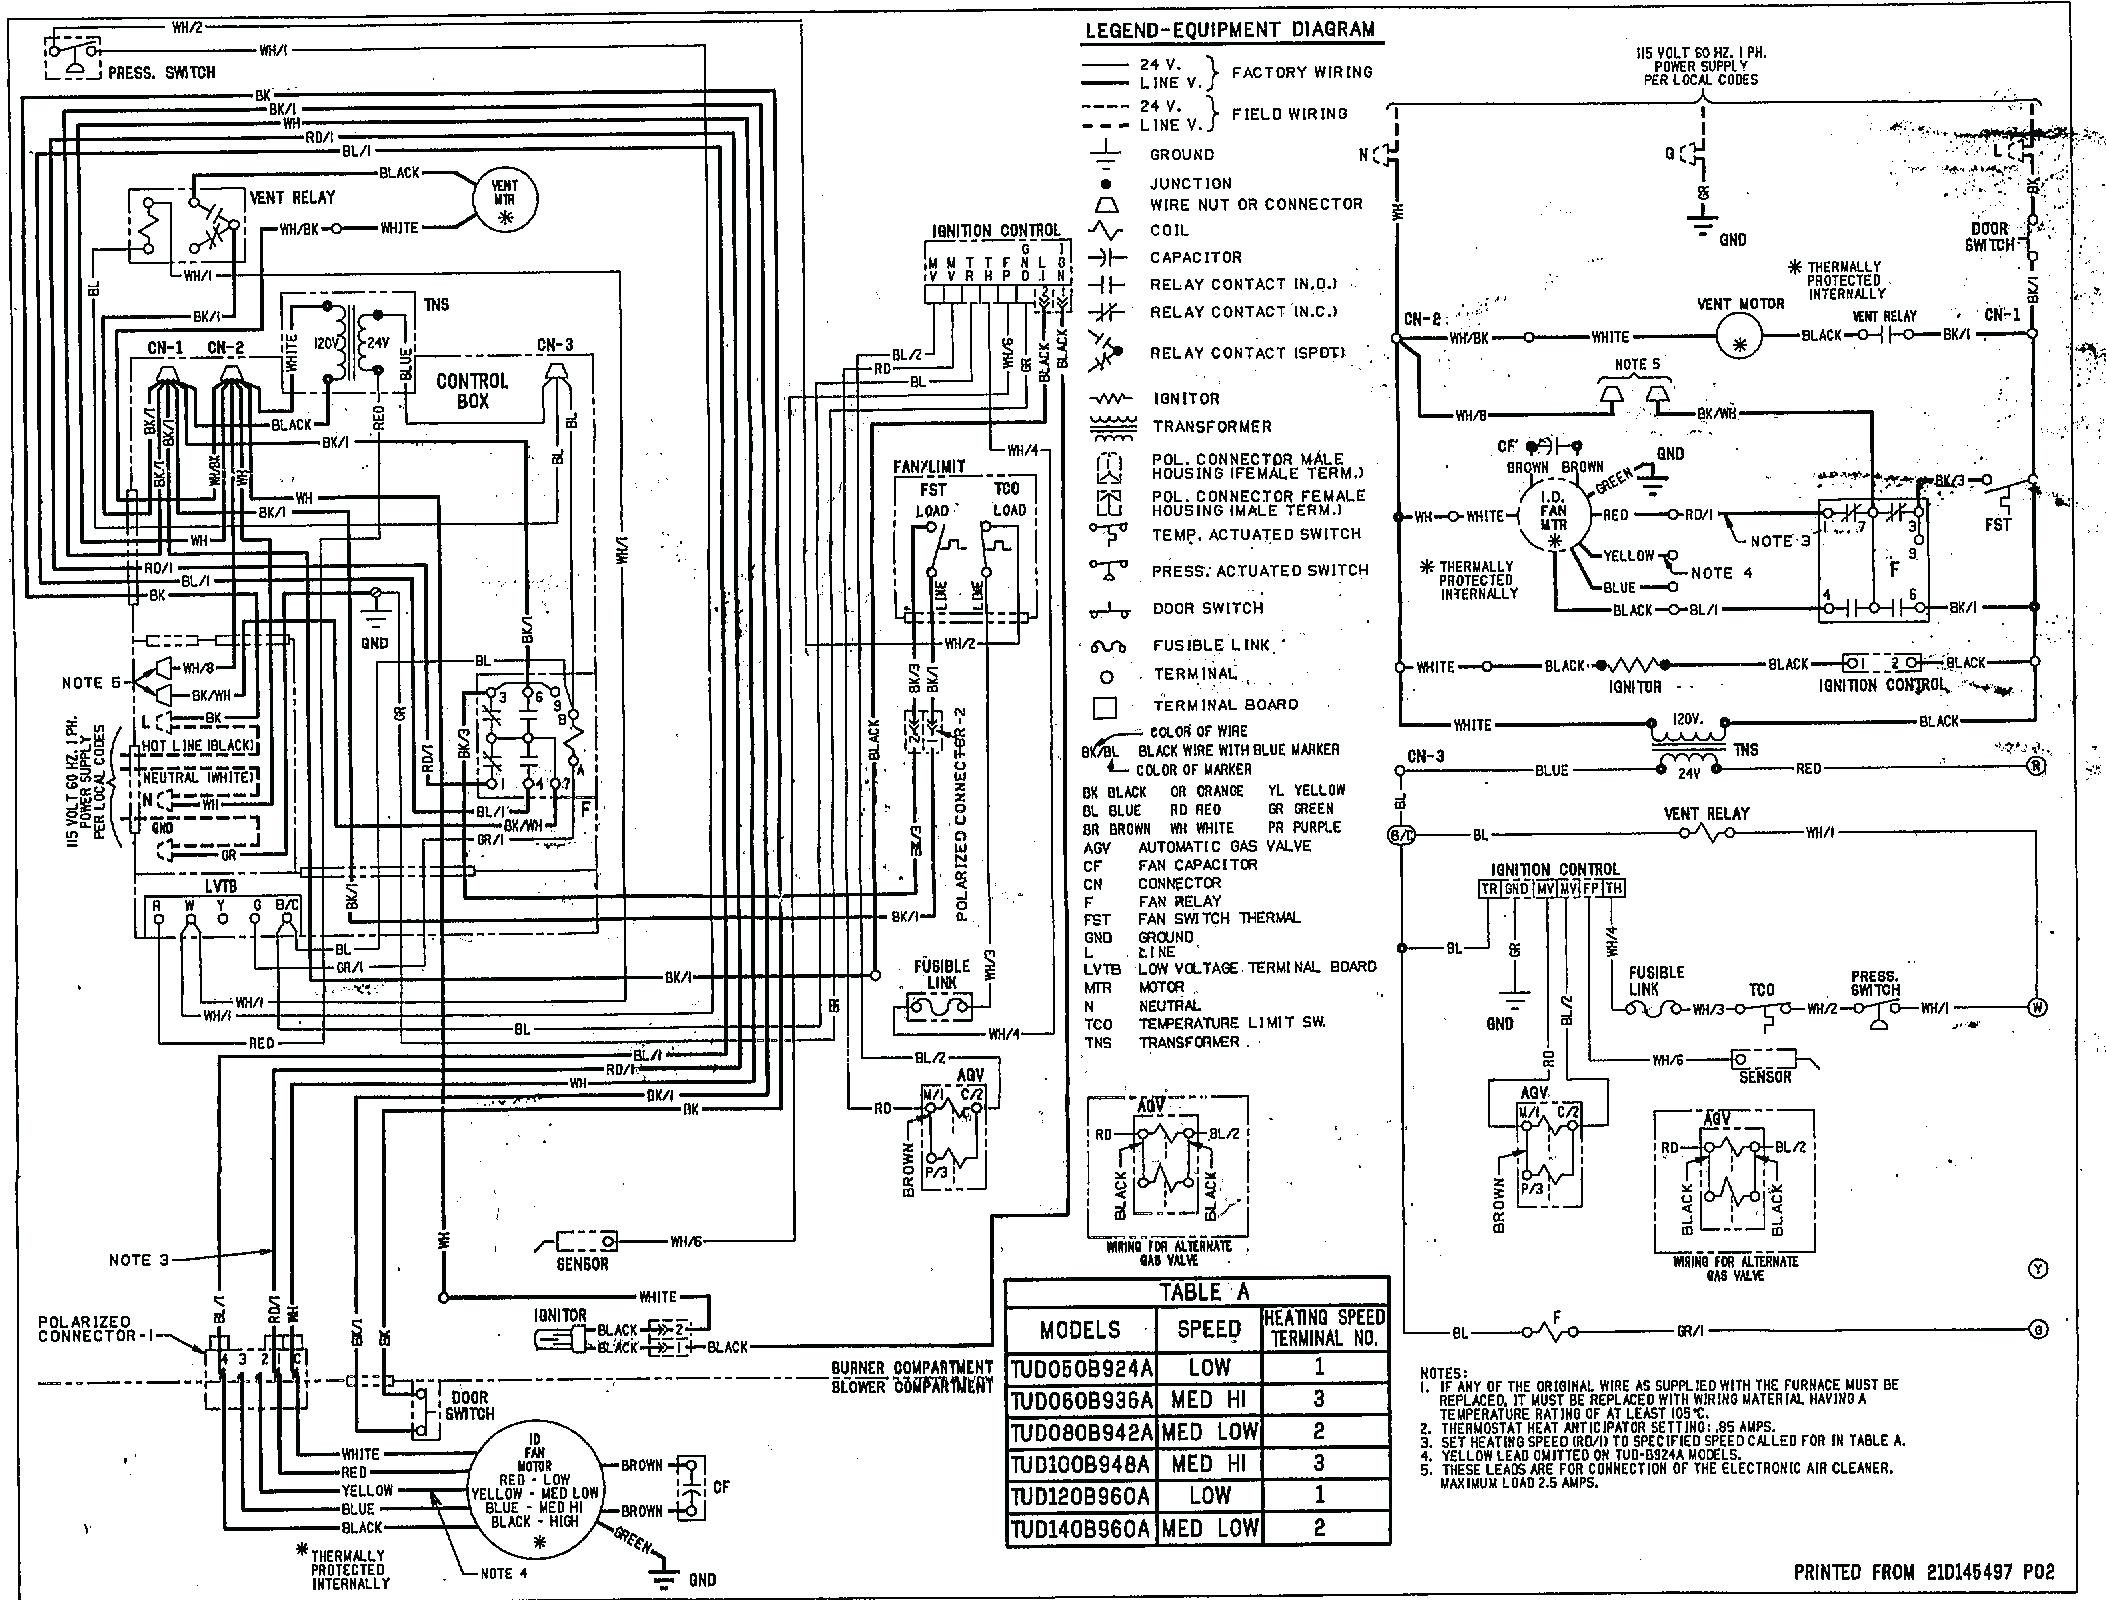 modine unit heater wiring diagram free wiring diagram Modine Heater Parts